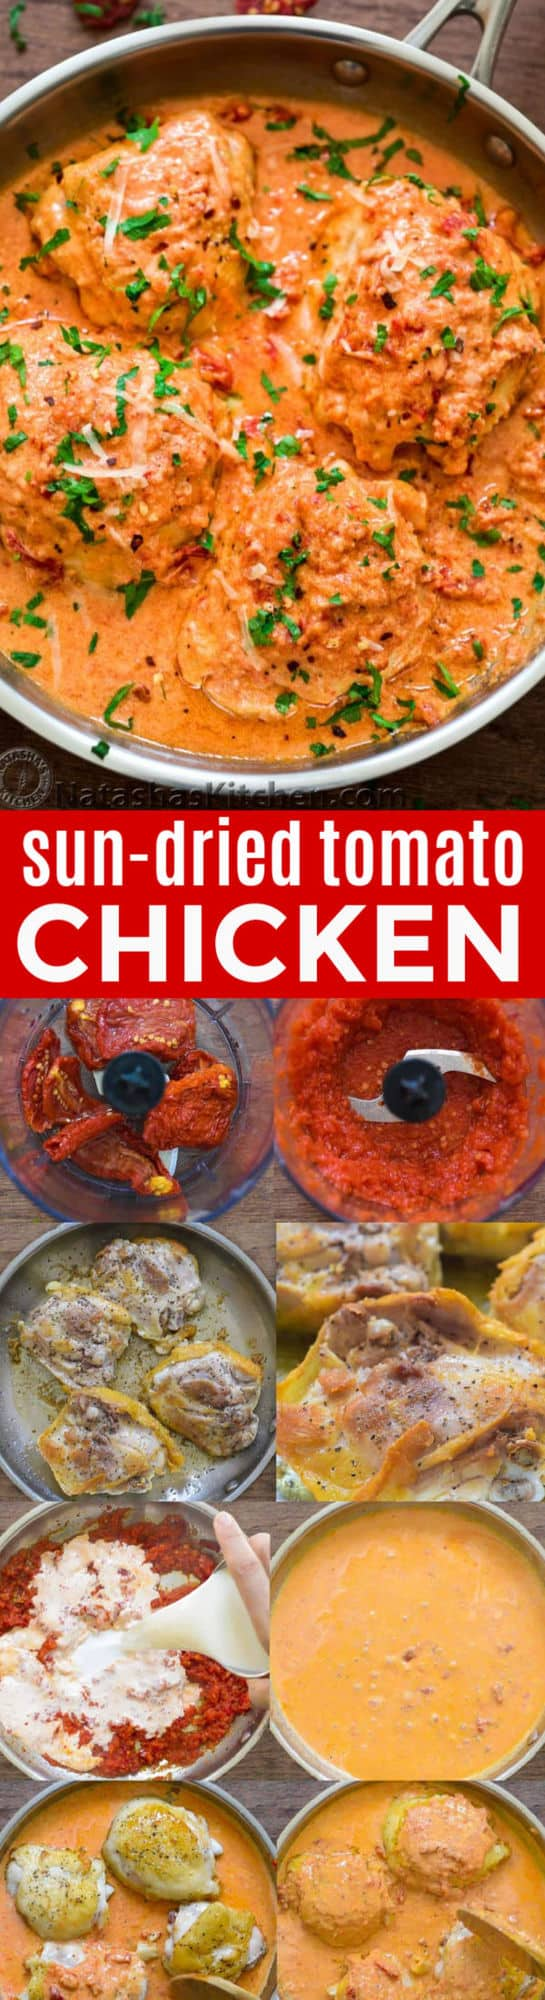 This one-pan Sun-Dried Tomato Chicken is quick, easy, and tossed in an incredibly creamy and delicious sun-dried tomato sauce + learn about cooking with sun-dried tomatoes | natashaskitchen.com